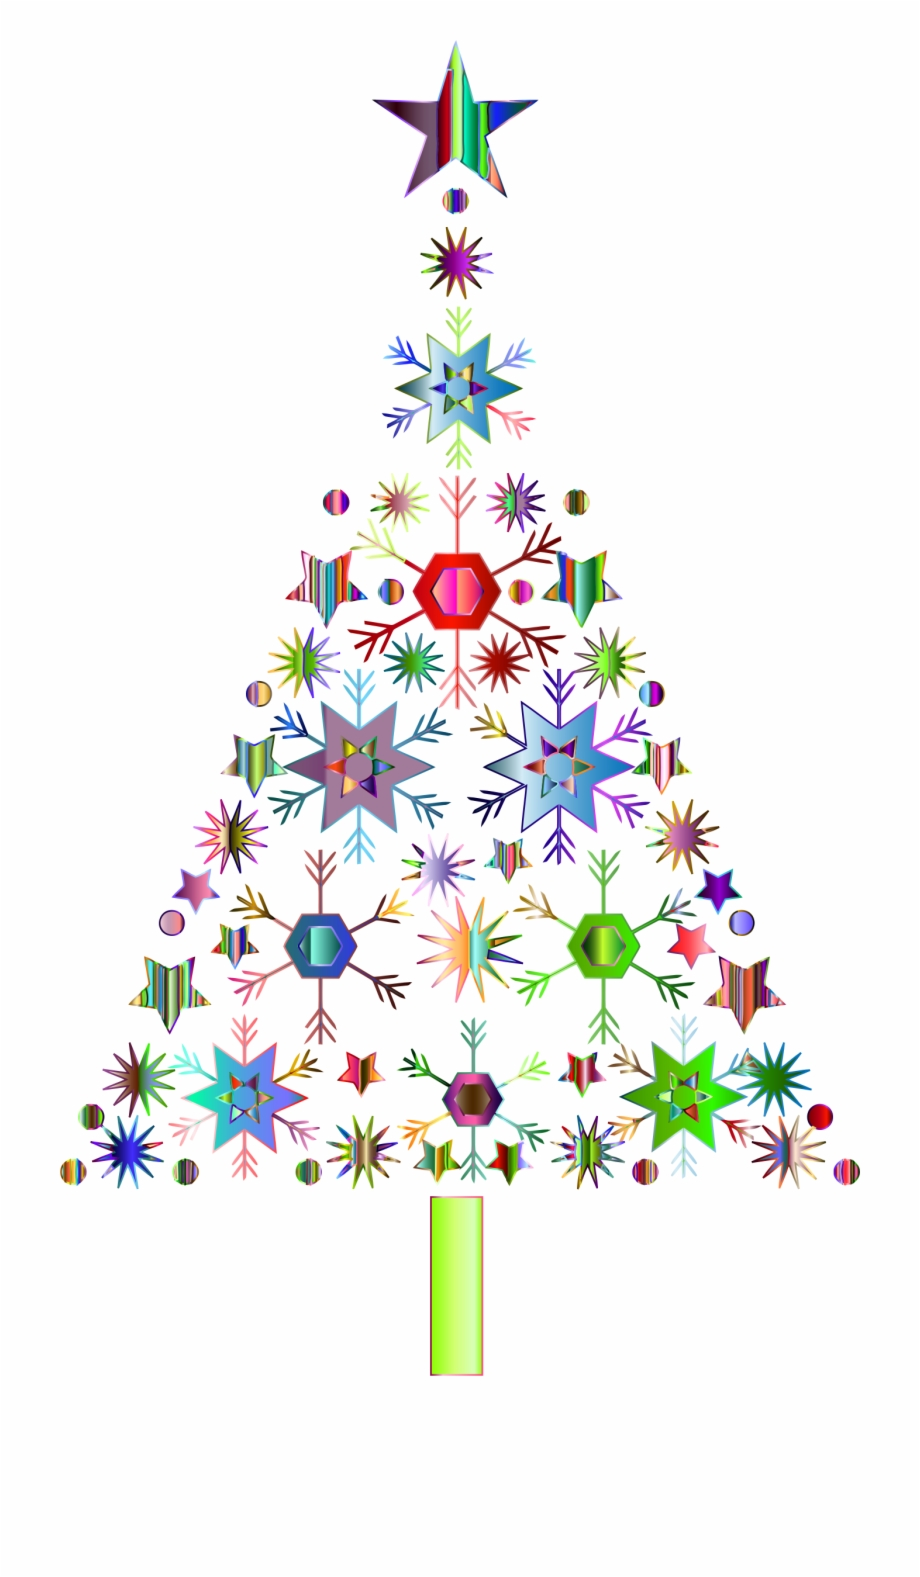 Abstract christmas tree images clipart png free download Abstract Snowflake Christmas Tree By Karen Arnold Prismatic ... png free download